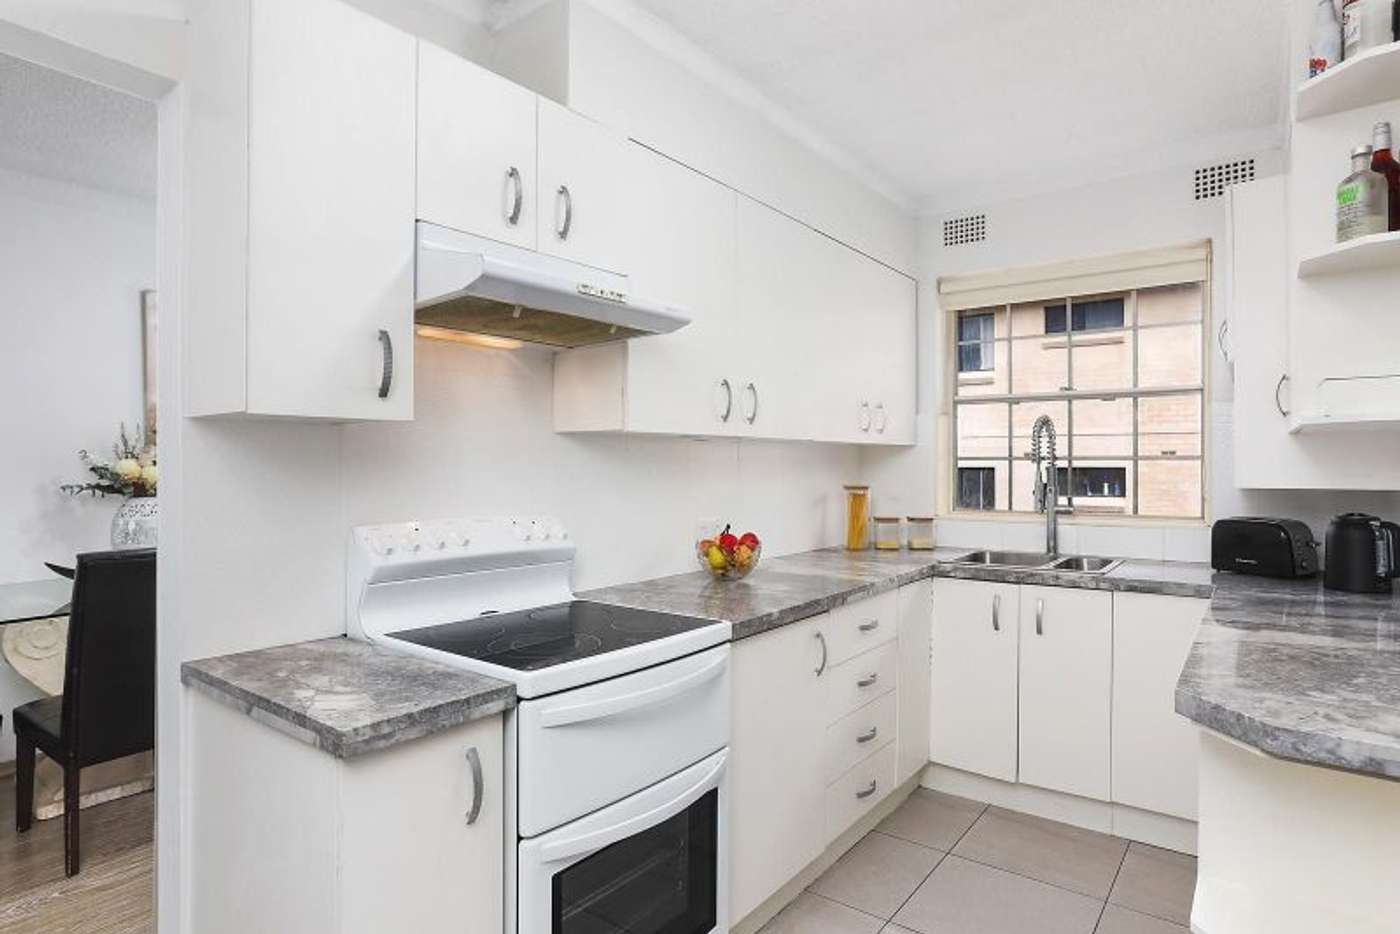 Sixth view of Homely apartment listing, 7/52 Bridge Street, Epping NSW 2121